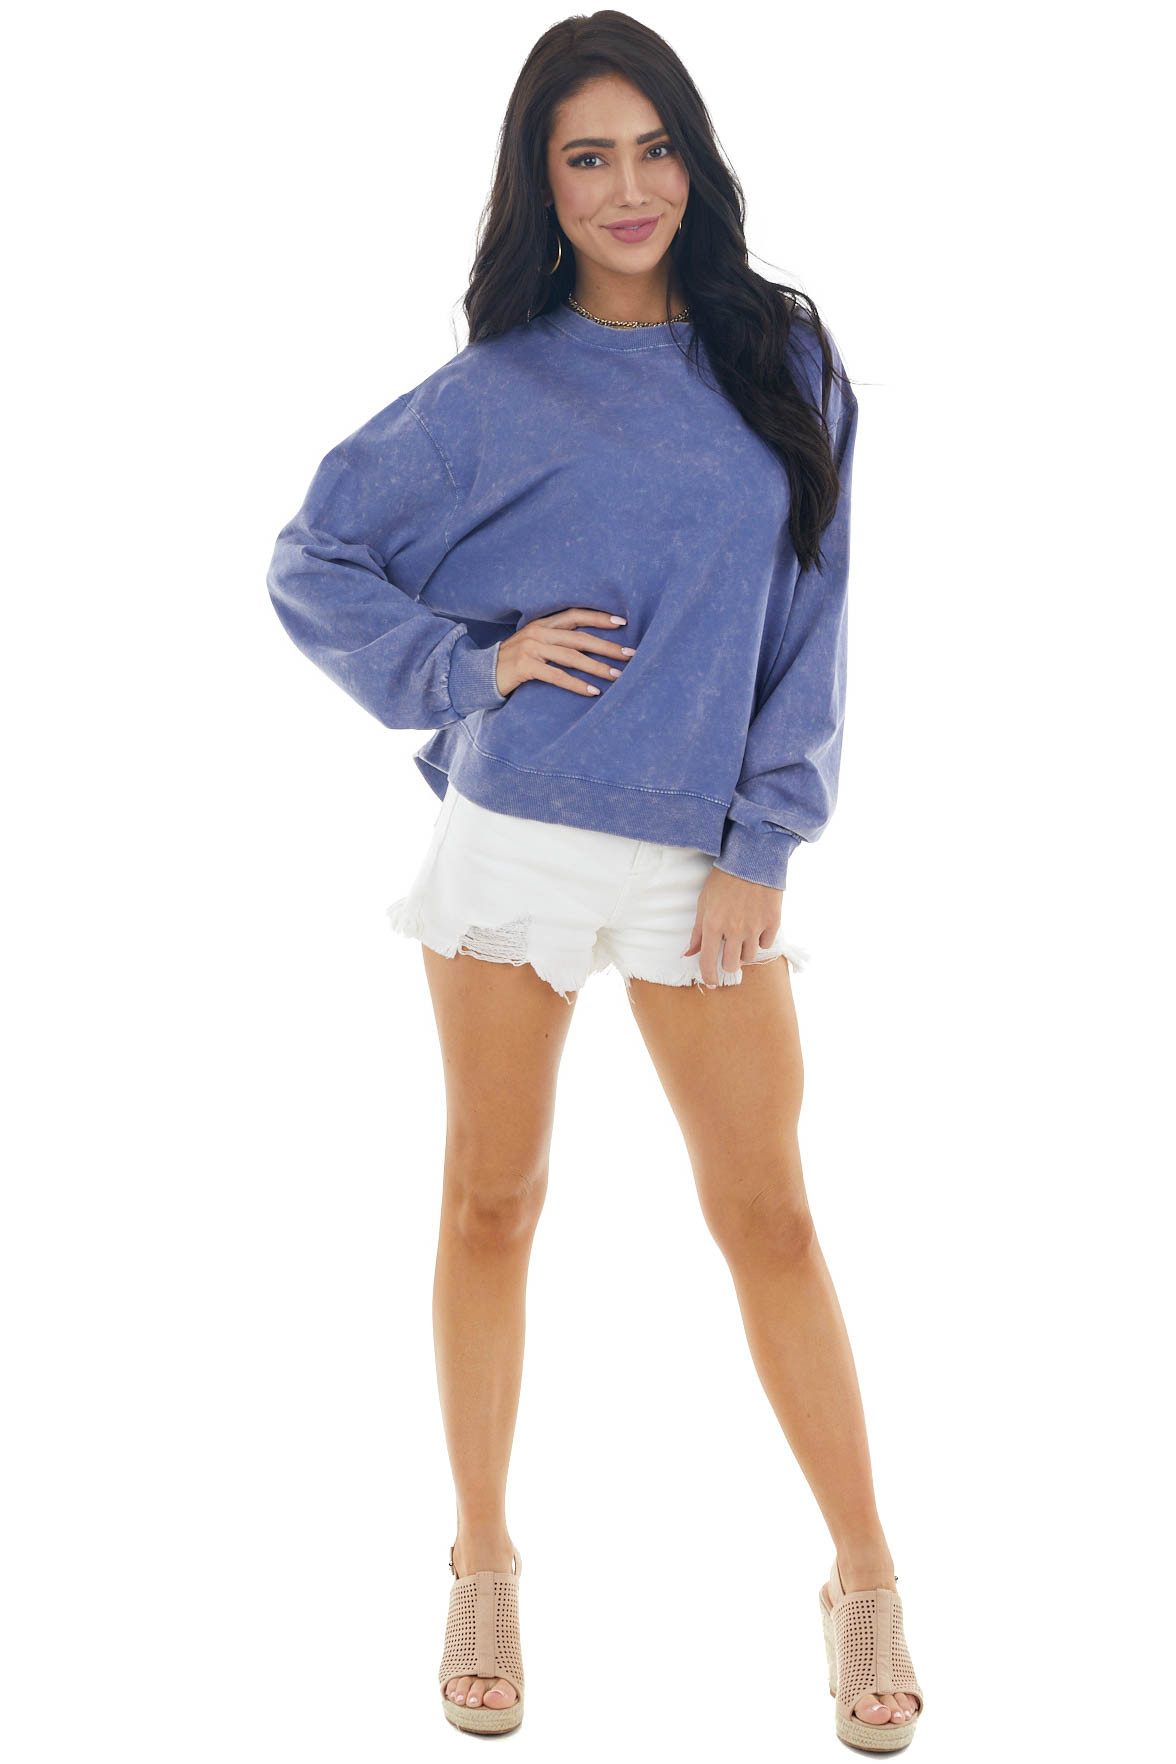 Cornflower Mineral Wash Knit Sweatshirt with Ribbed Trim